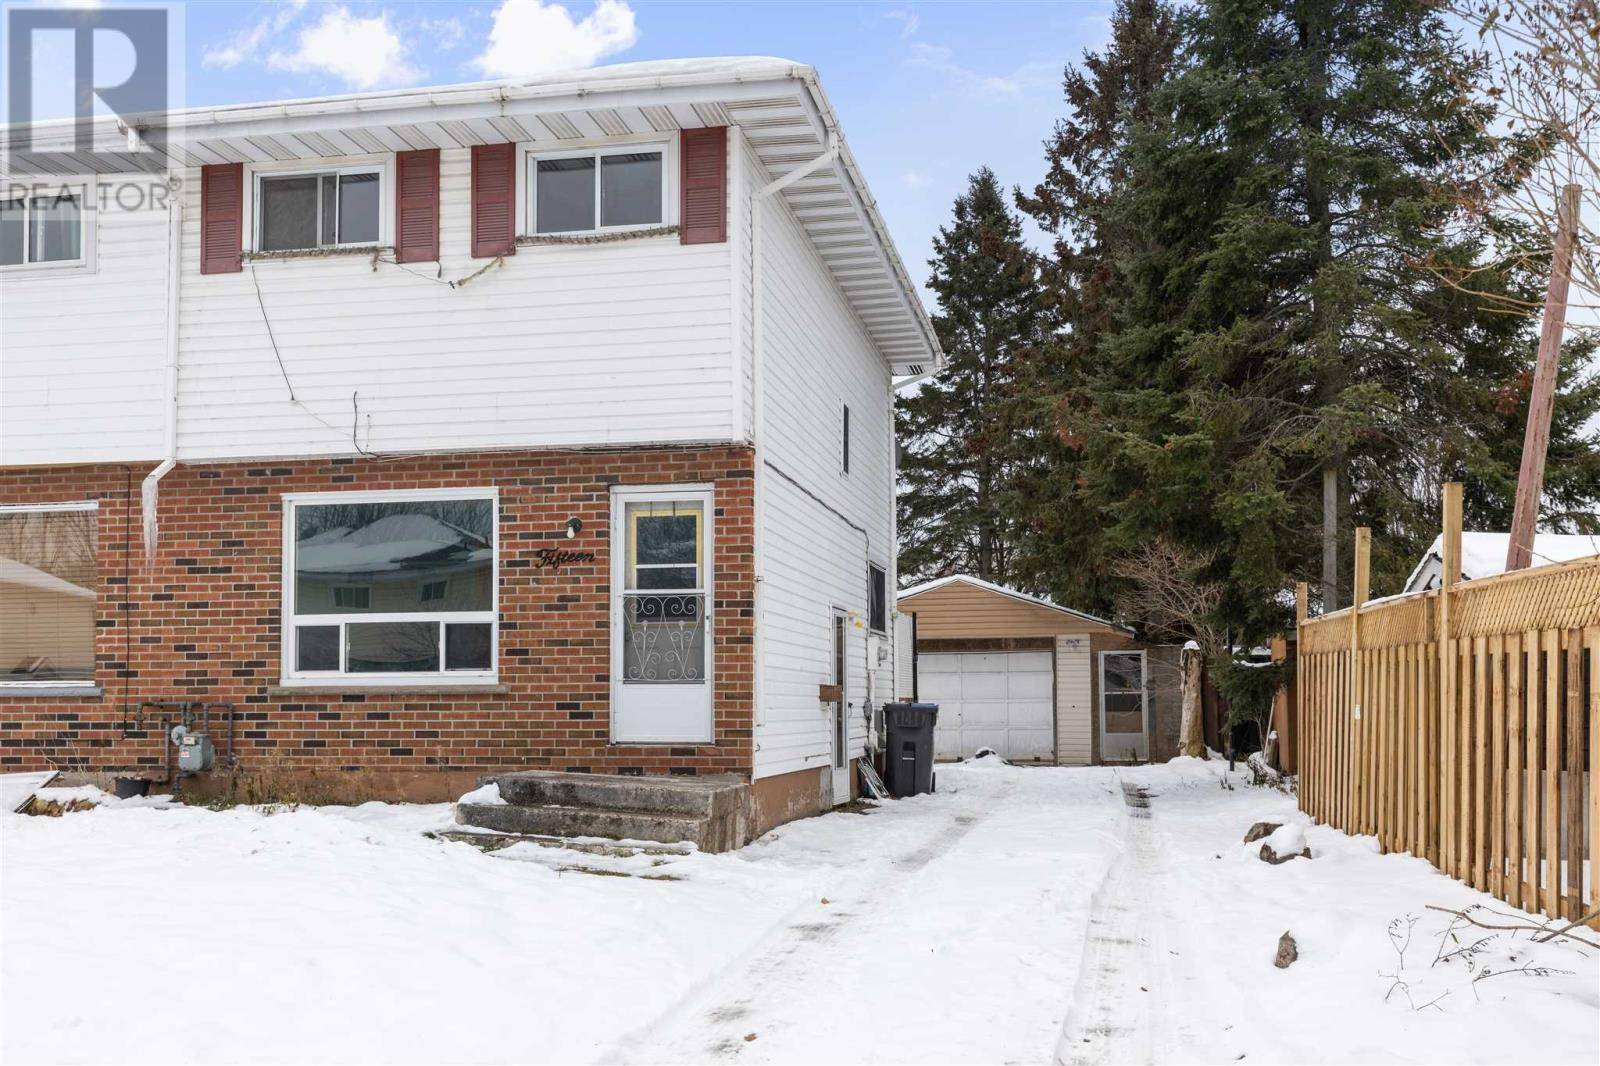 House for sale at 15 Princeton Dr Sault Ste. Marie Ontario - MLS: SM127468